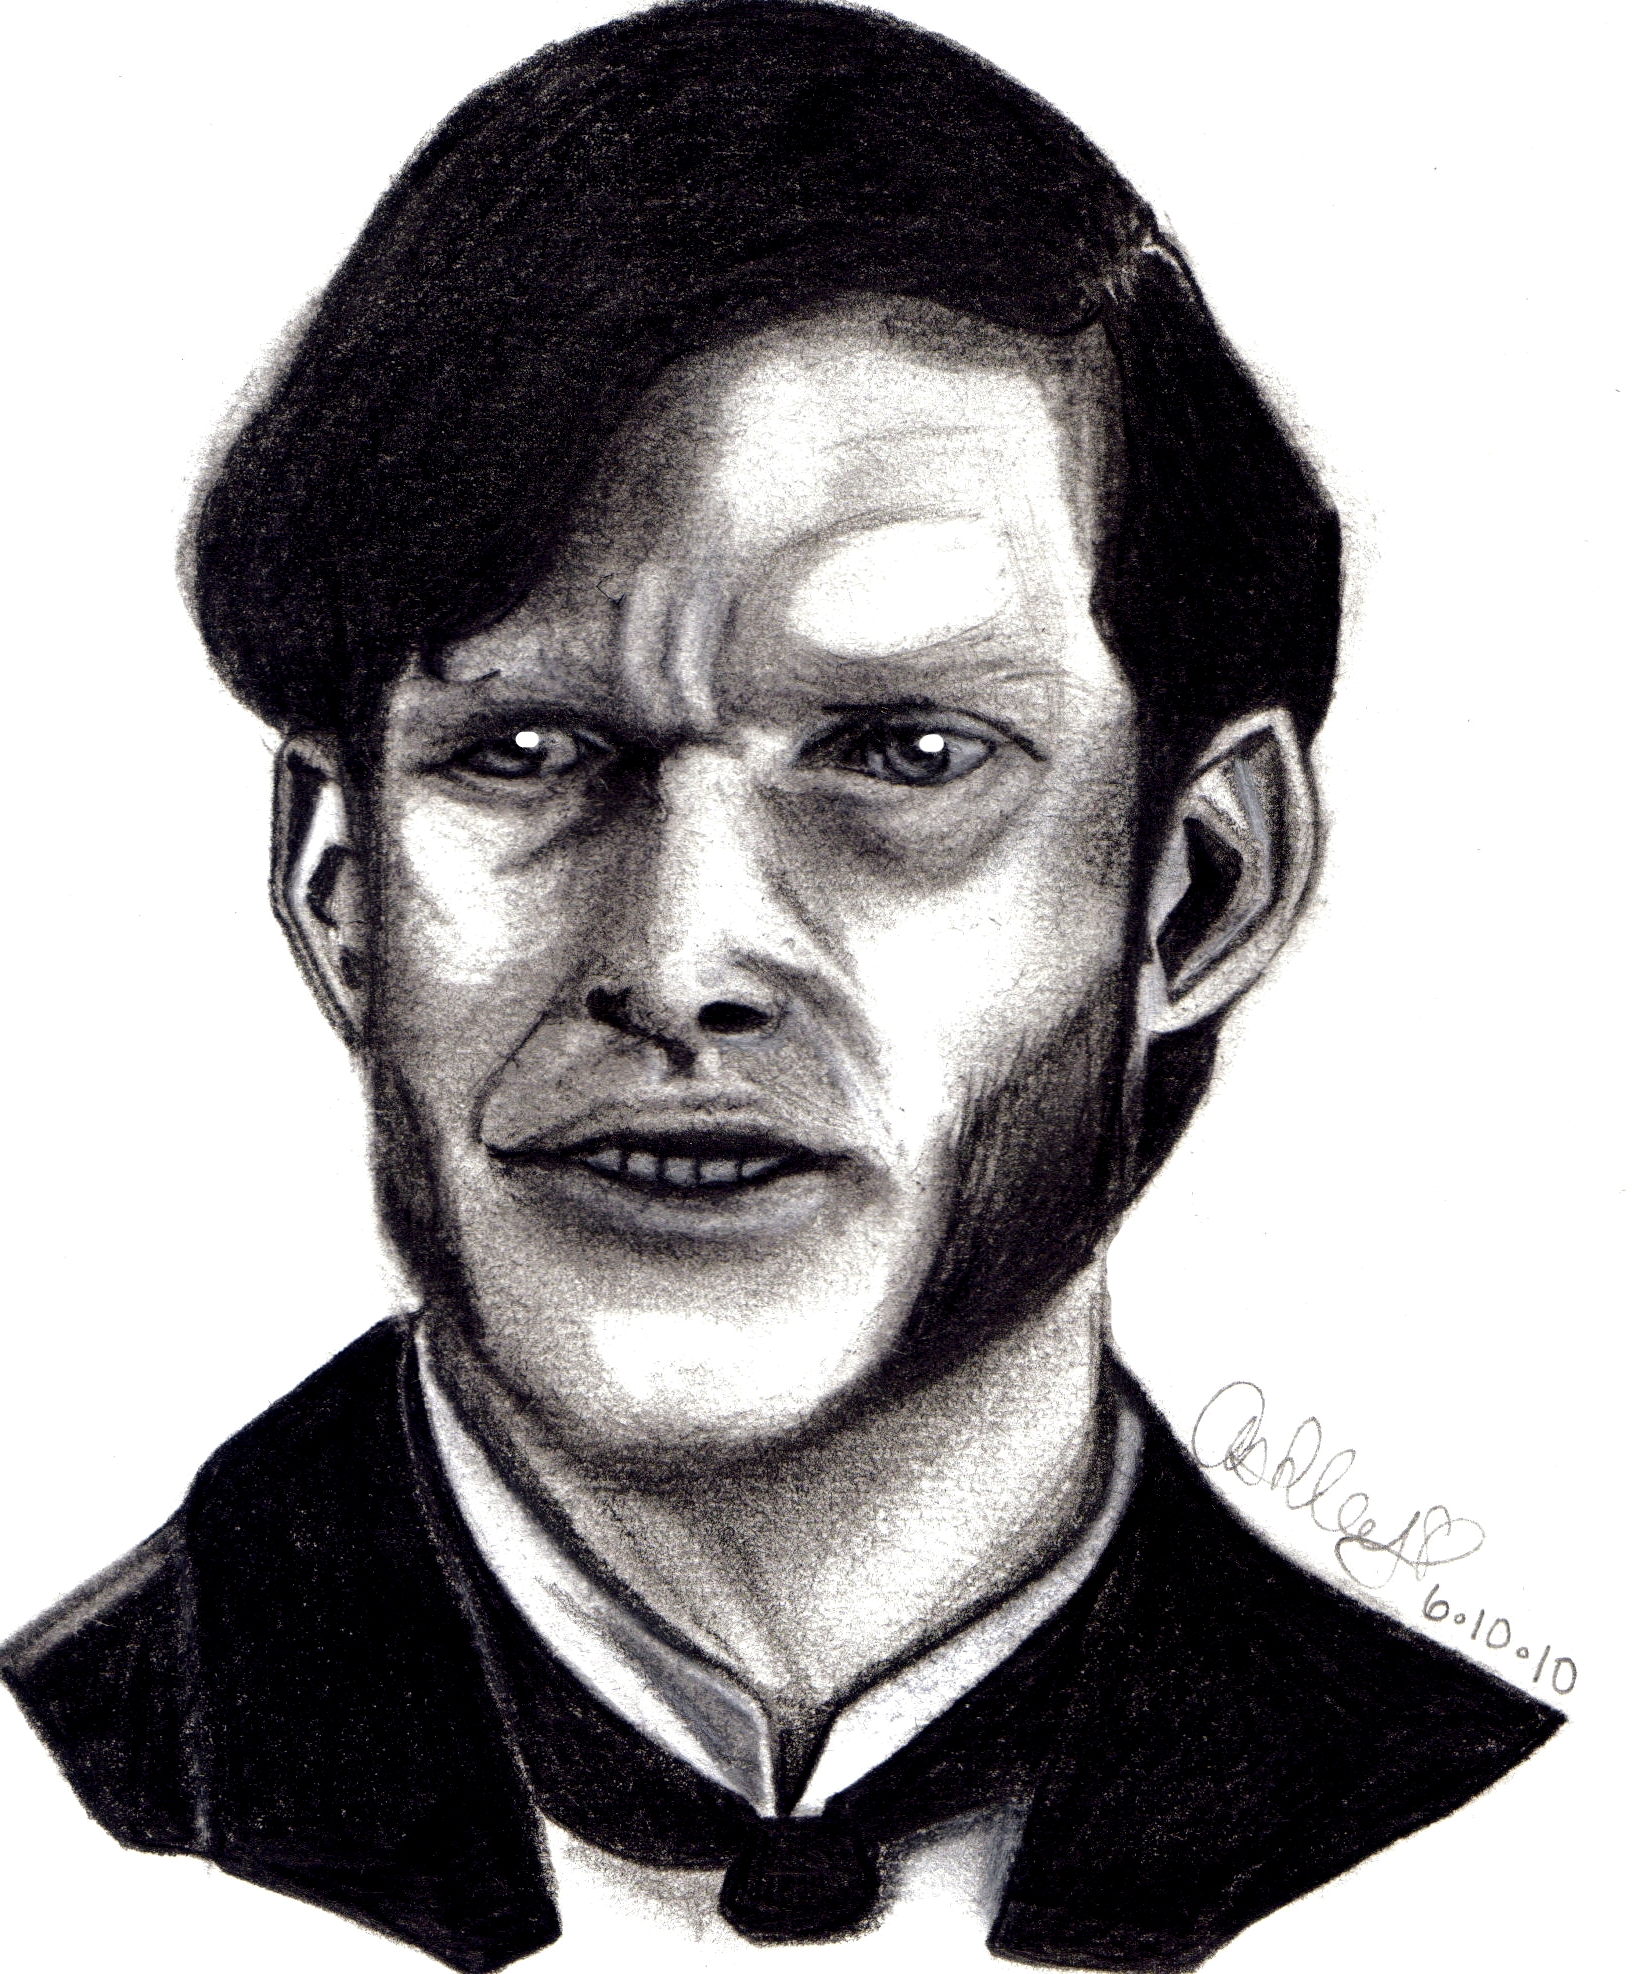 Jason Flemyng as Dr Jekyll by dms_cheeseshirted_chorusneko